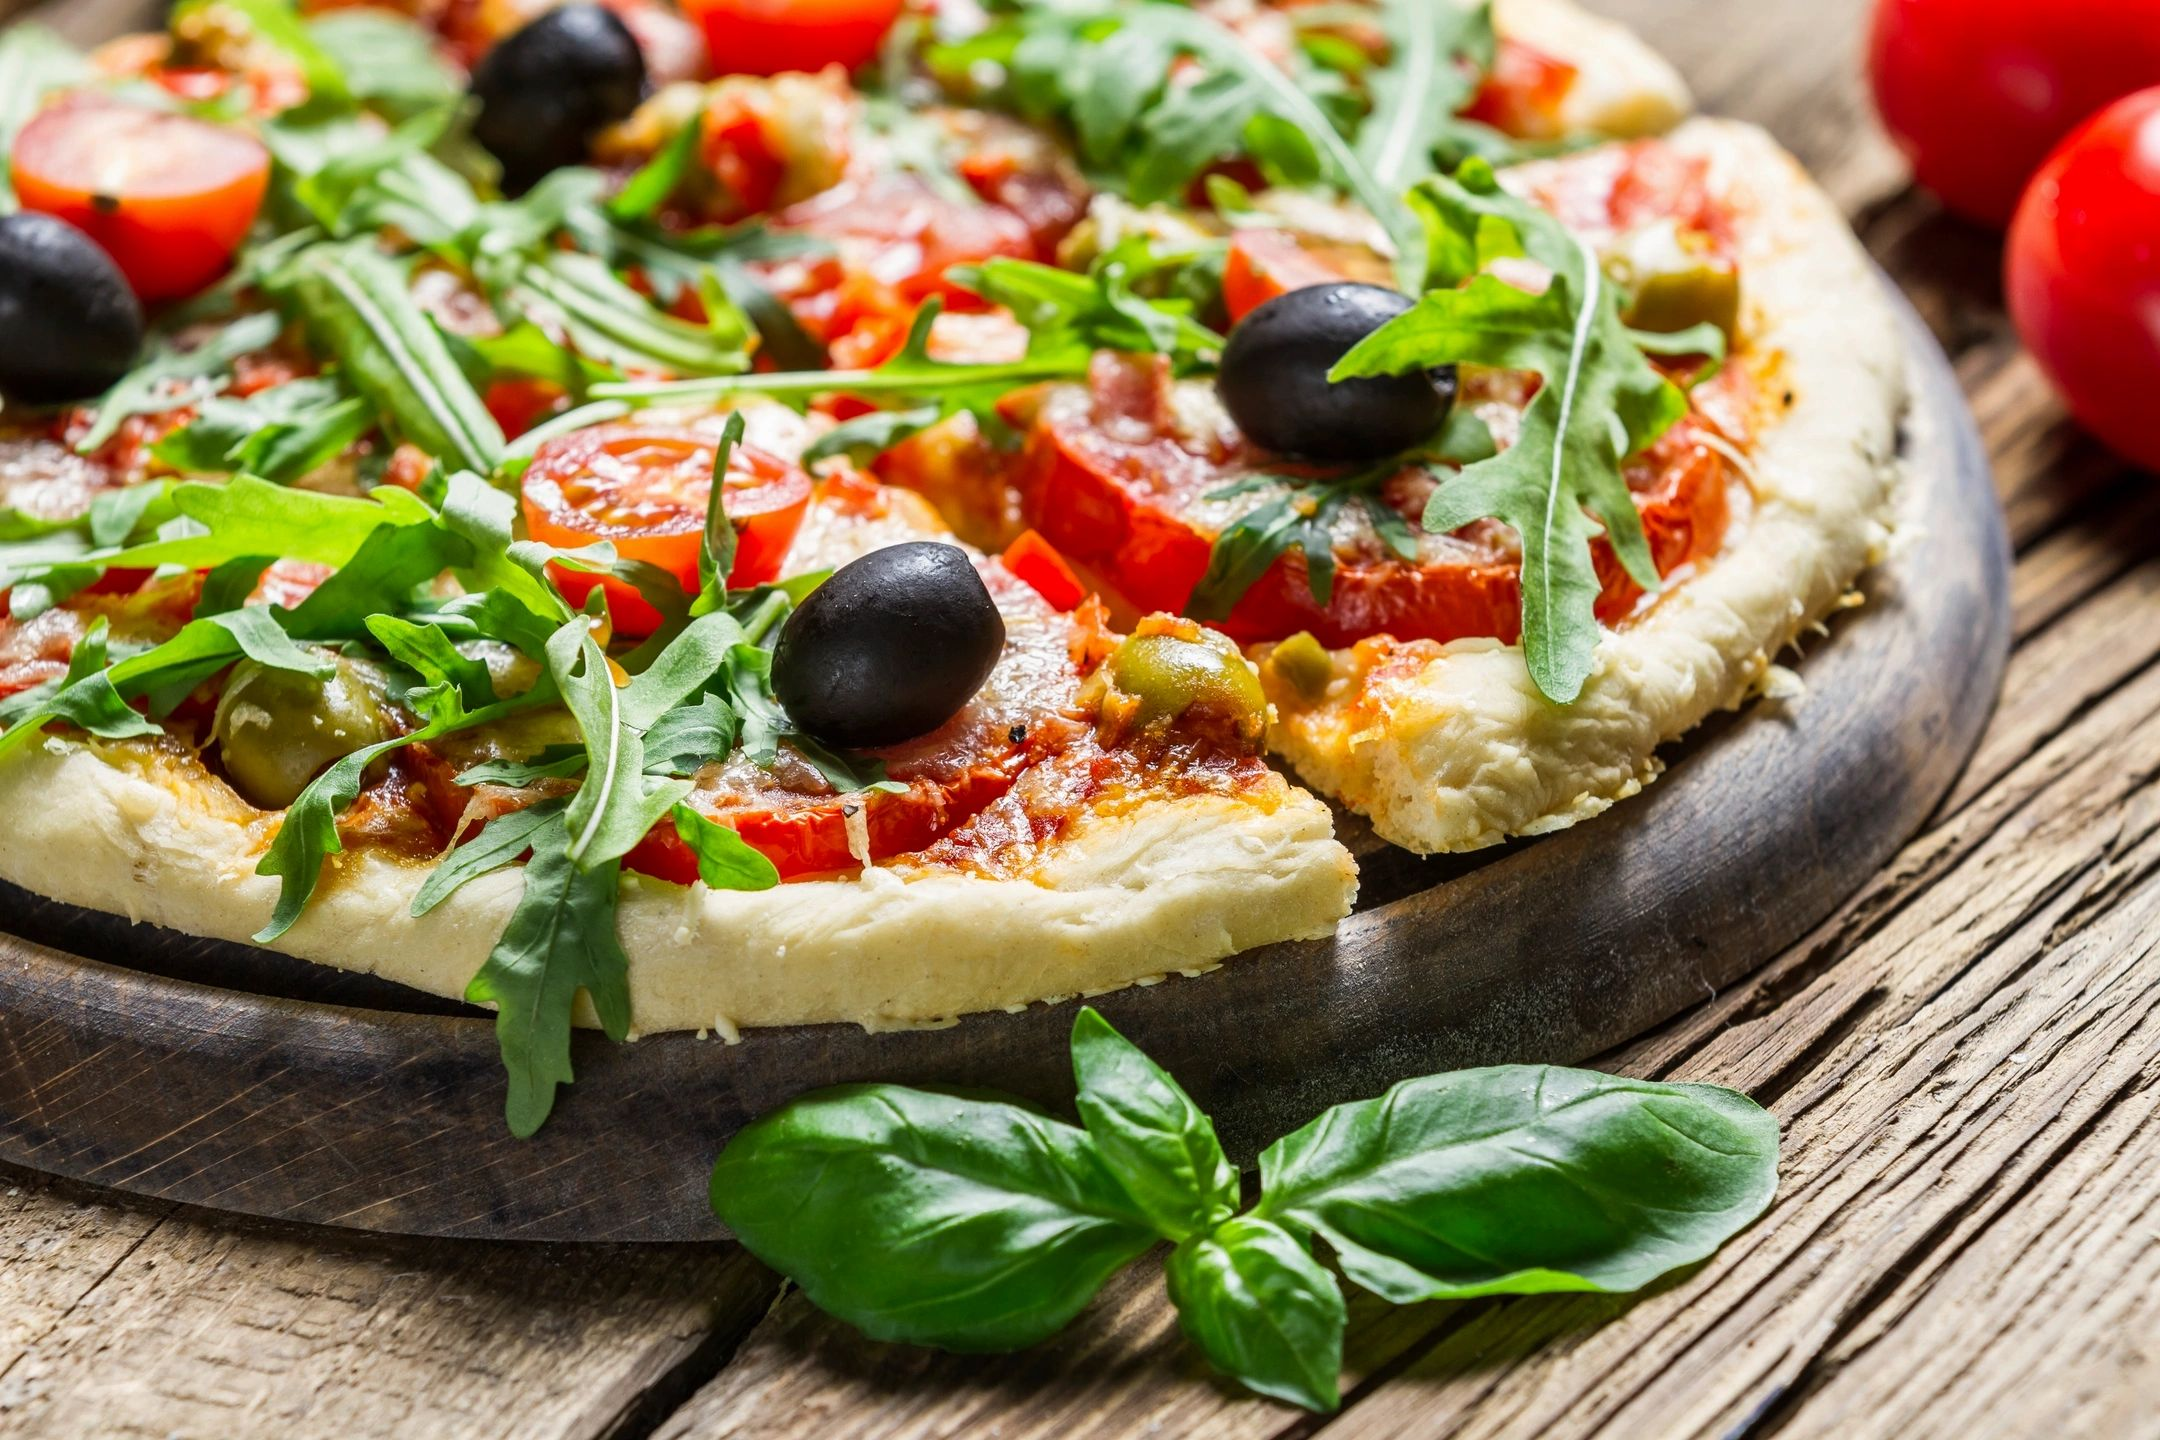 Pizza on cutting board with fresh olives and arugula